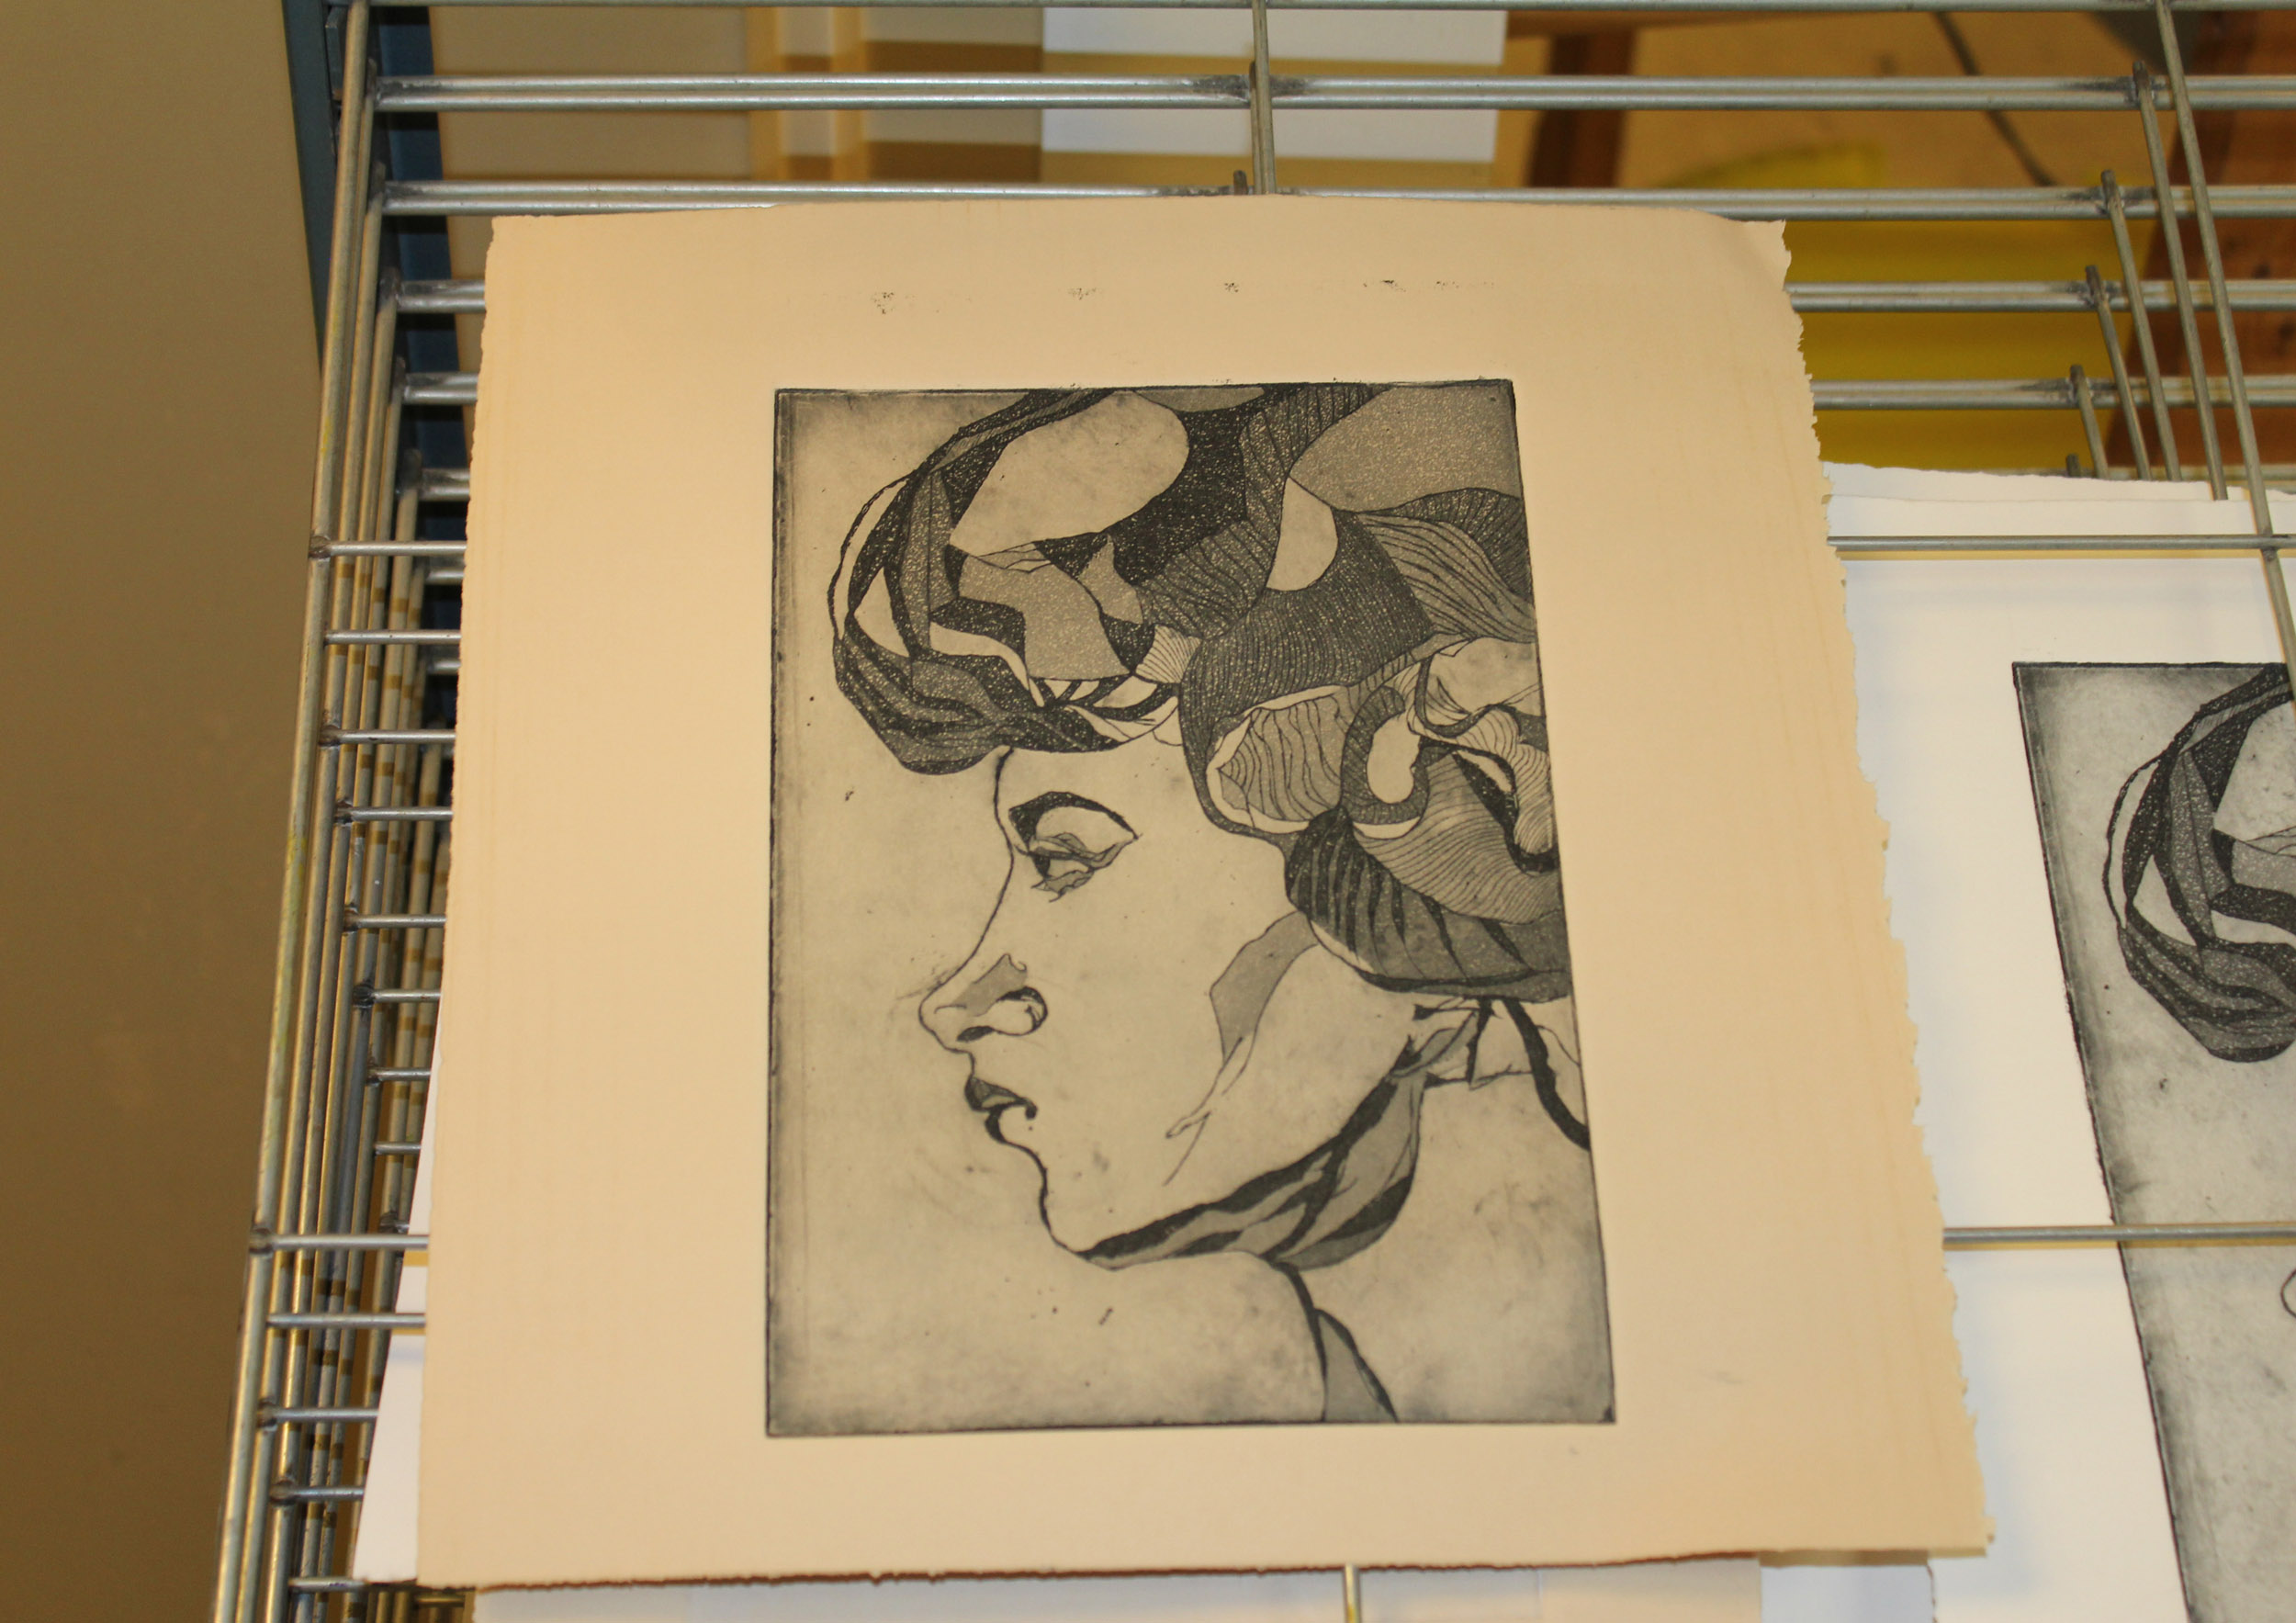 aquatint-print-by-kaitlin-rincon-student-work-from-my-spring-2013-etching-class-at-fleisher_8913431400_o.jpg